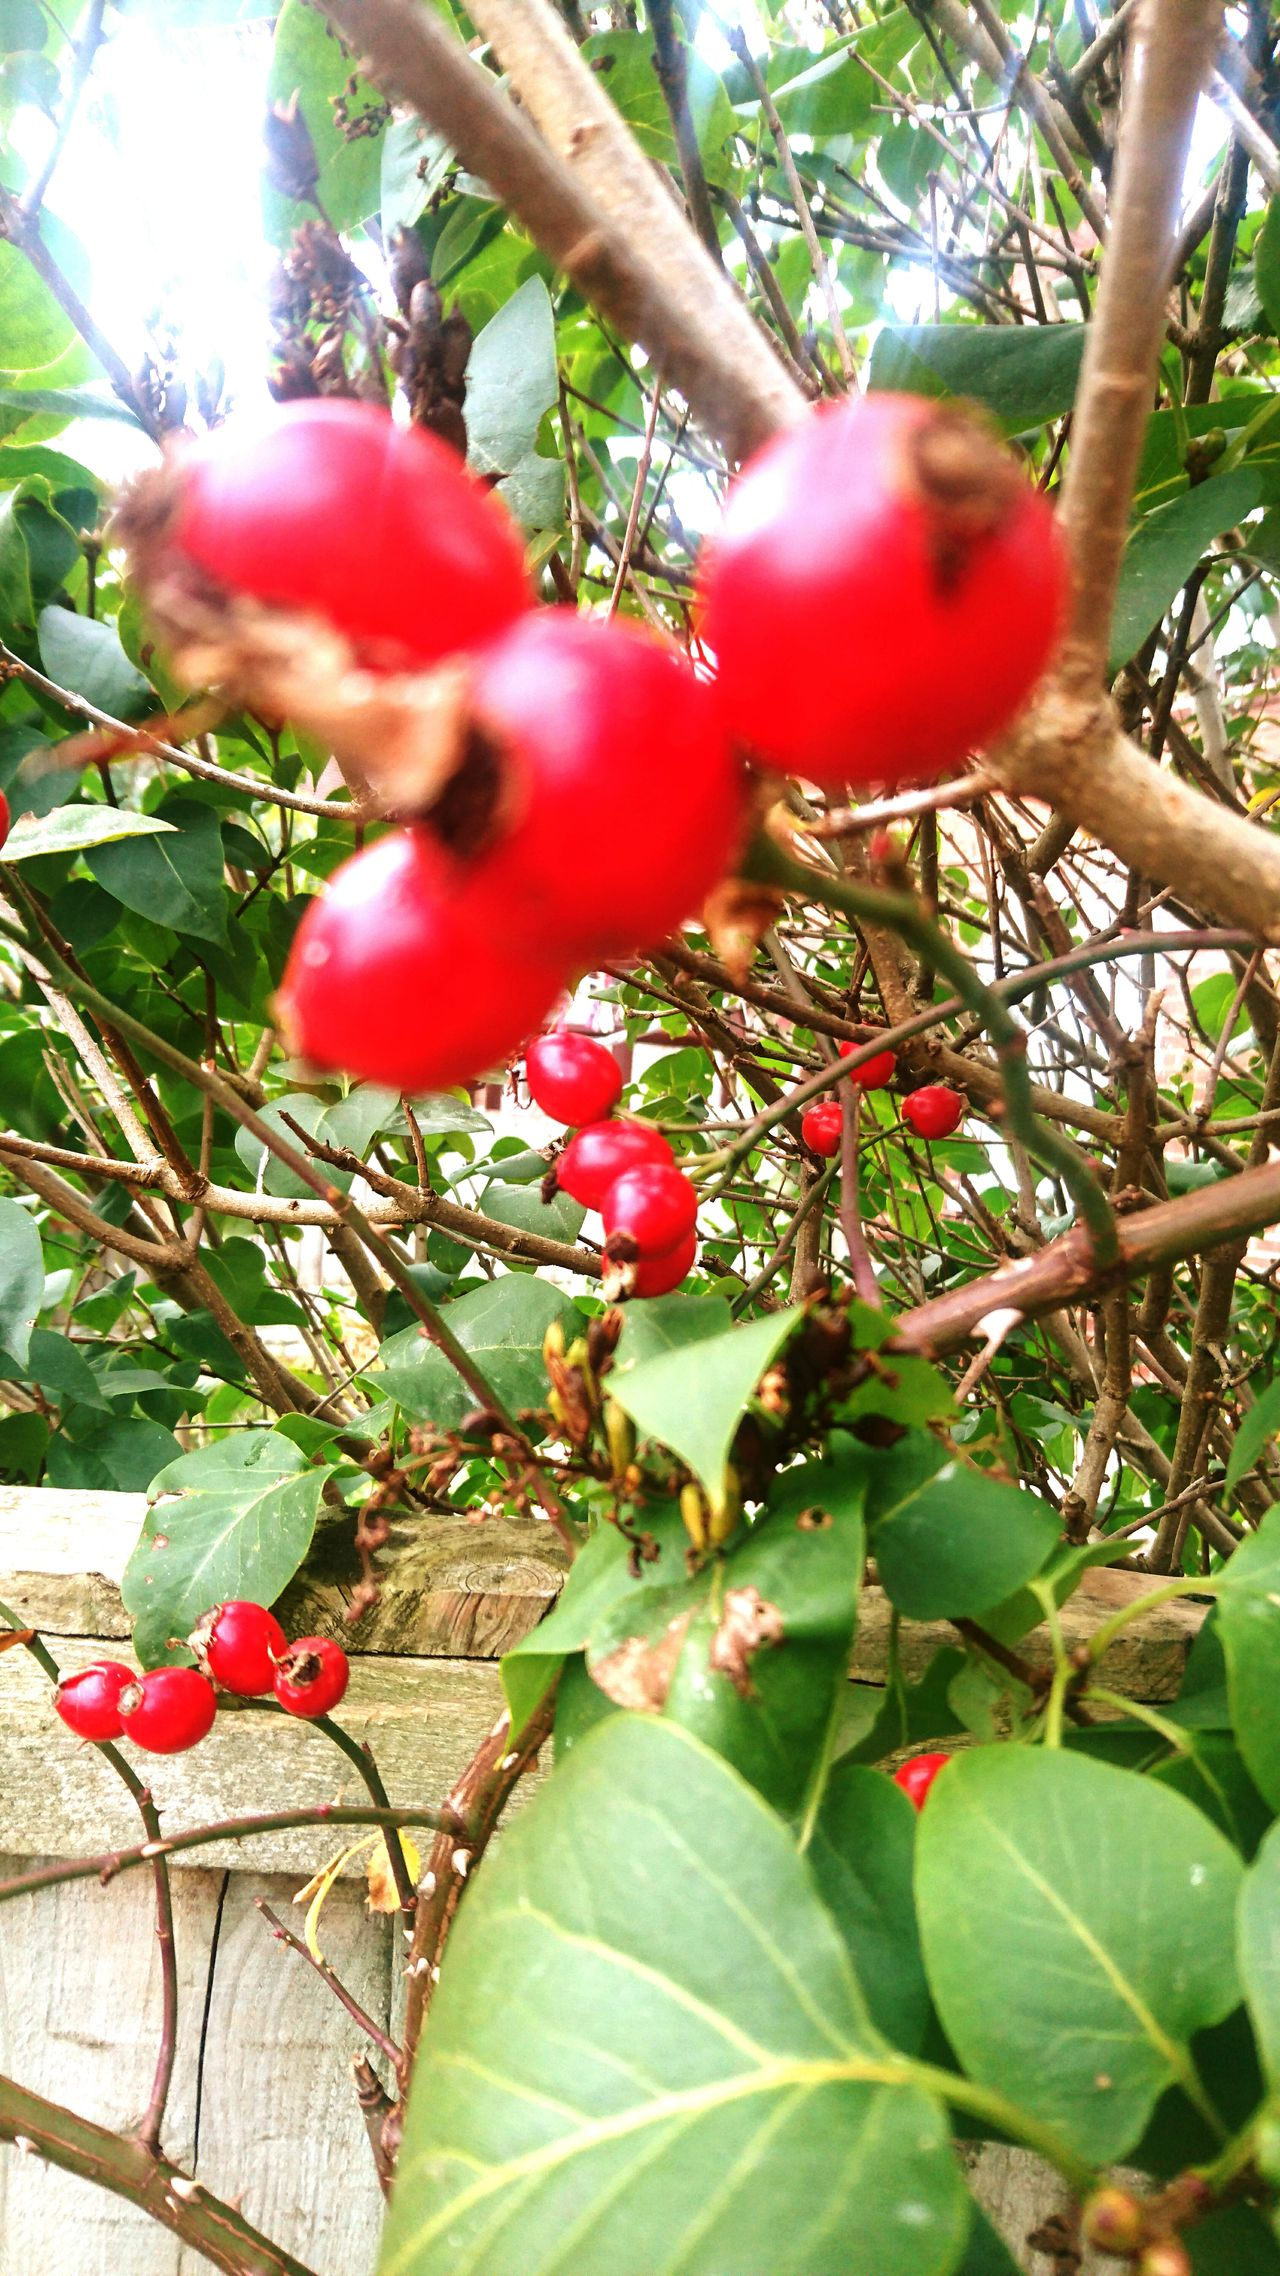 Red Growth Fruit Tree Vertical Branch No People Nature Leaf Green Color Close-up Plant Food Beauty In Nature Outdoors Day Freshness Agriculture Maximum Closeness Rose Hips Autumn Garden Photography Garden Fall Autumn Colors